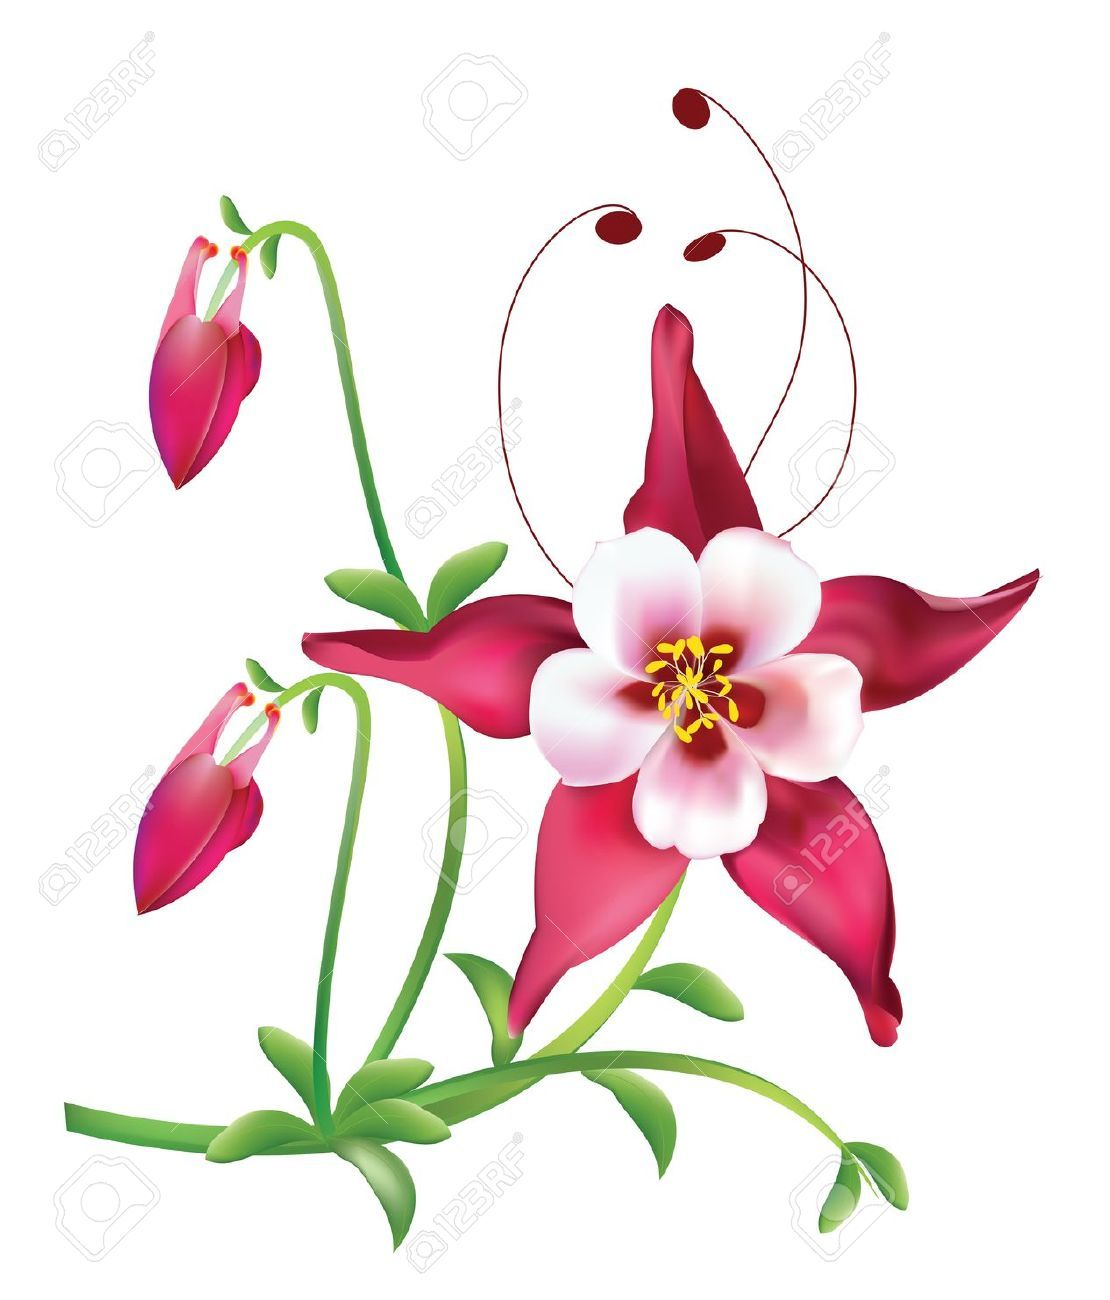 Red columbine flower royalty free cliparts vectors and stock red columbine flower royalty free cliparts vectors and stock dhlflorist Image collections